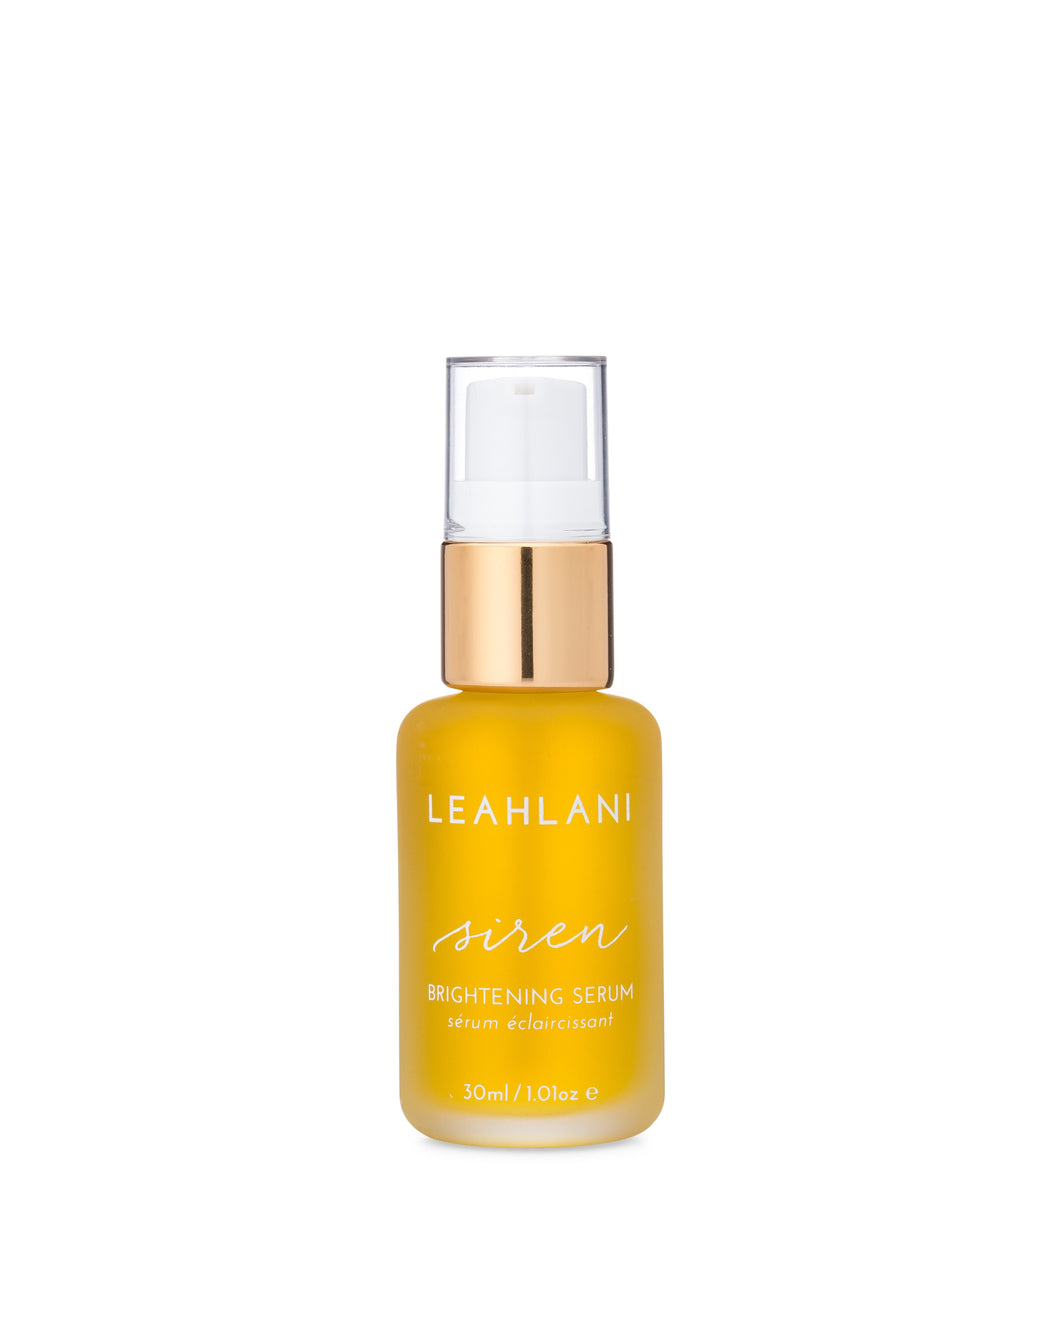 Siren Brightening Serum - shop now at be pure